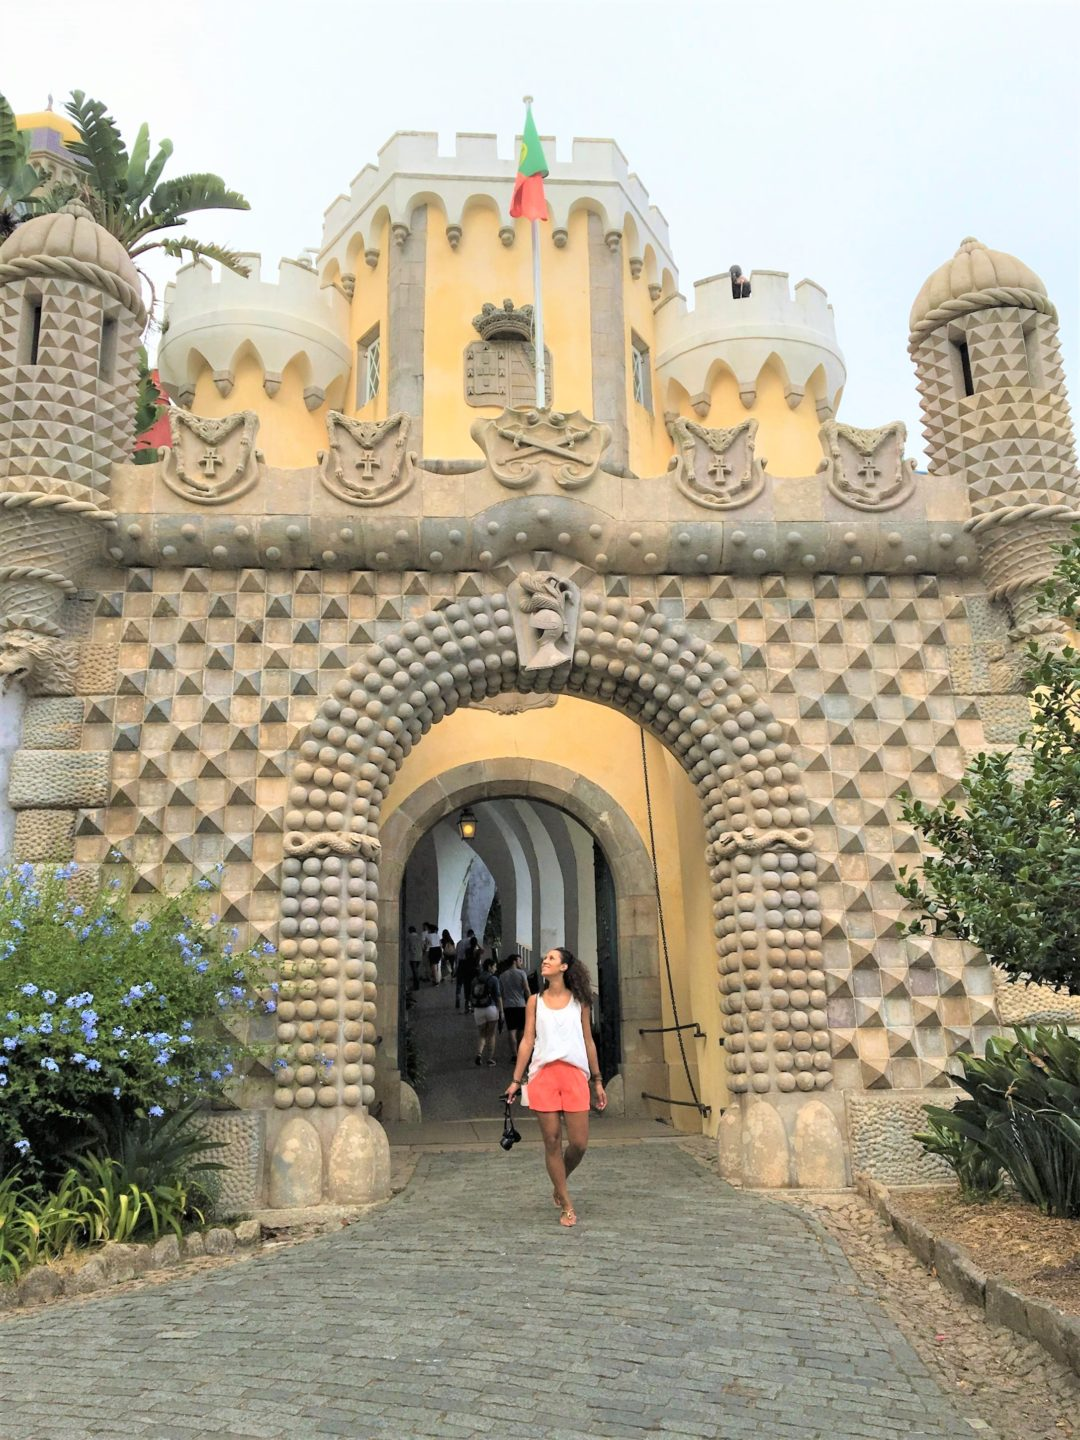 Grand entrance of the Pena Palace in Sintra, Portugal